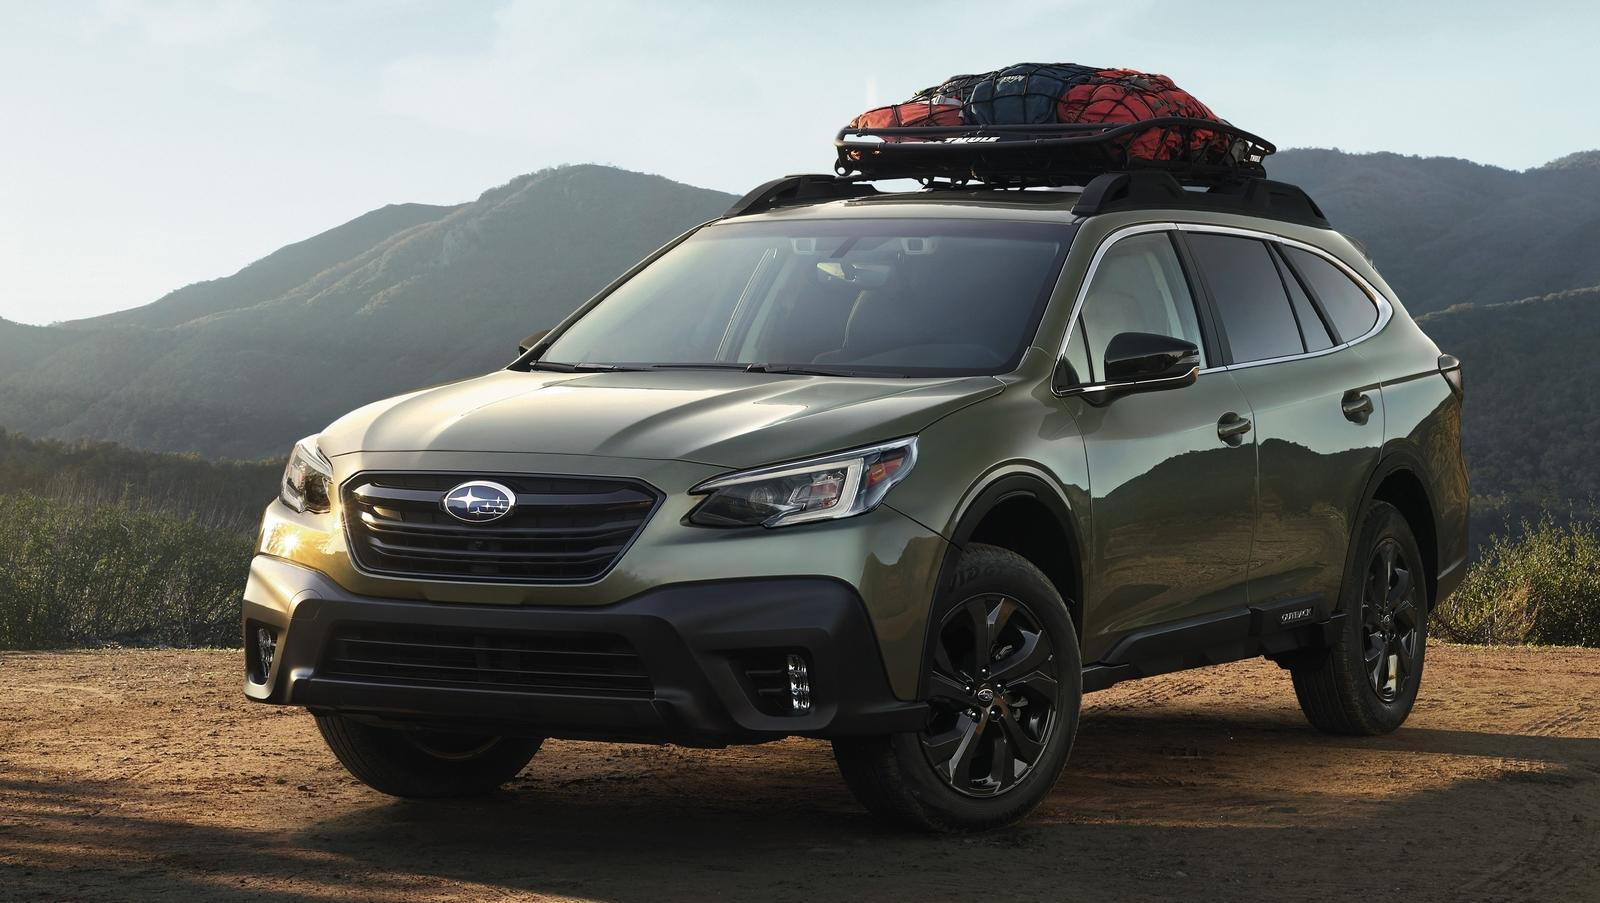 2020 Subaru Outback Debuts As The Safest, Most Capable ...